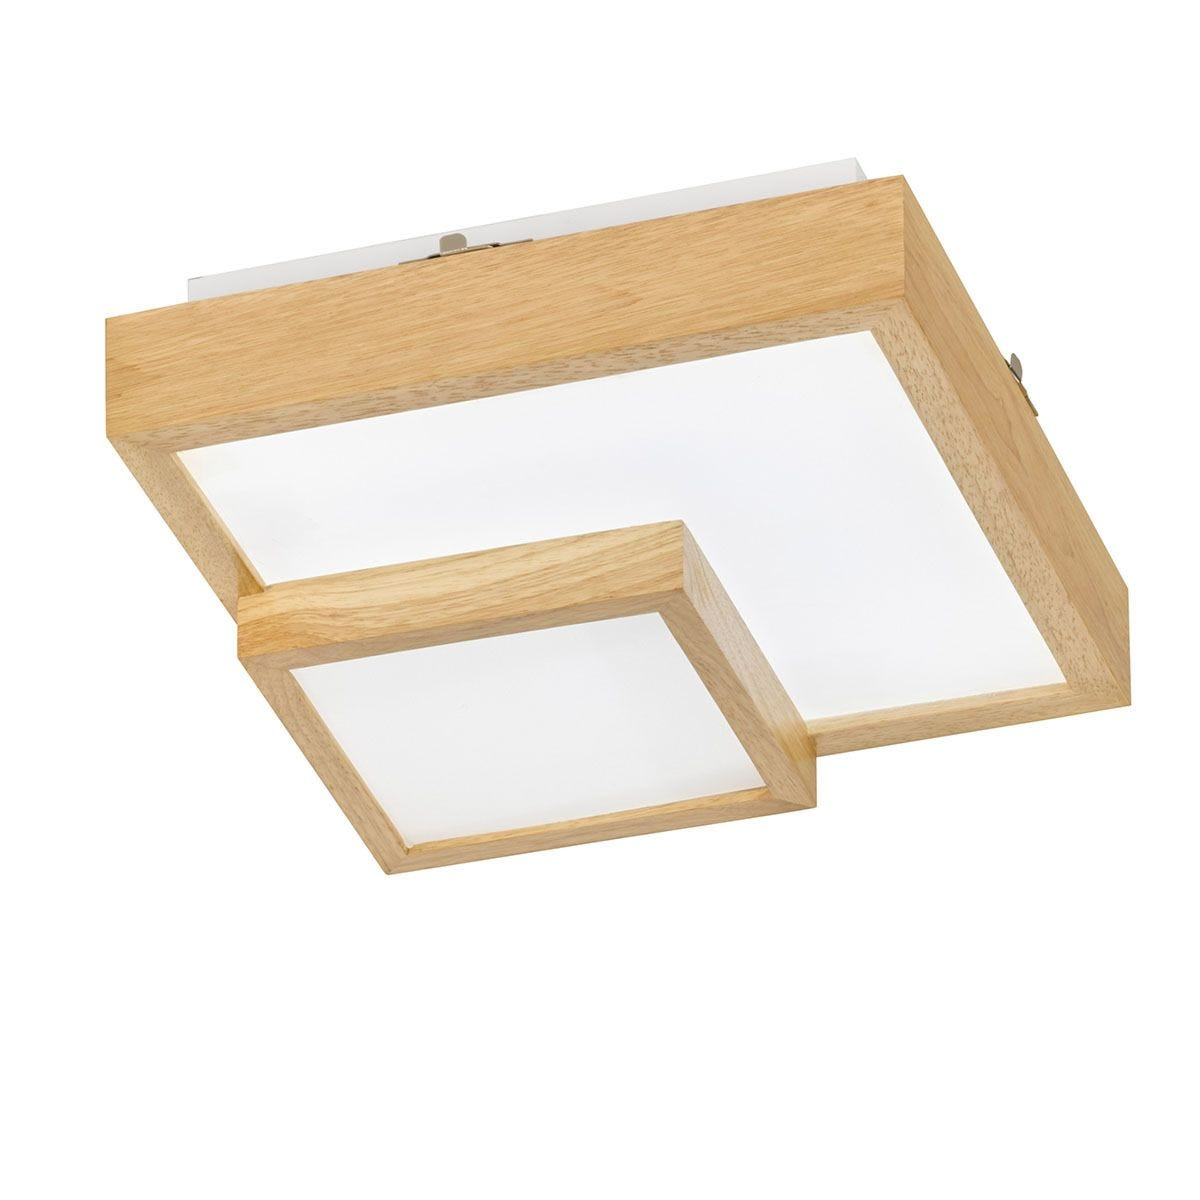 Wofi Hudson LED Ceiling Lamp - Wooden